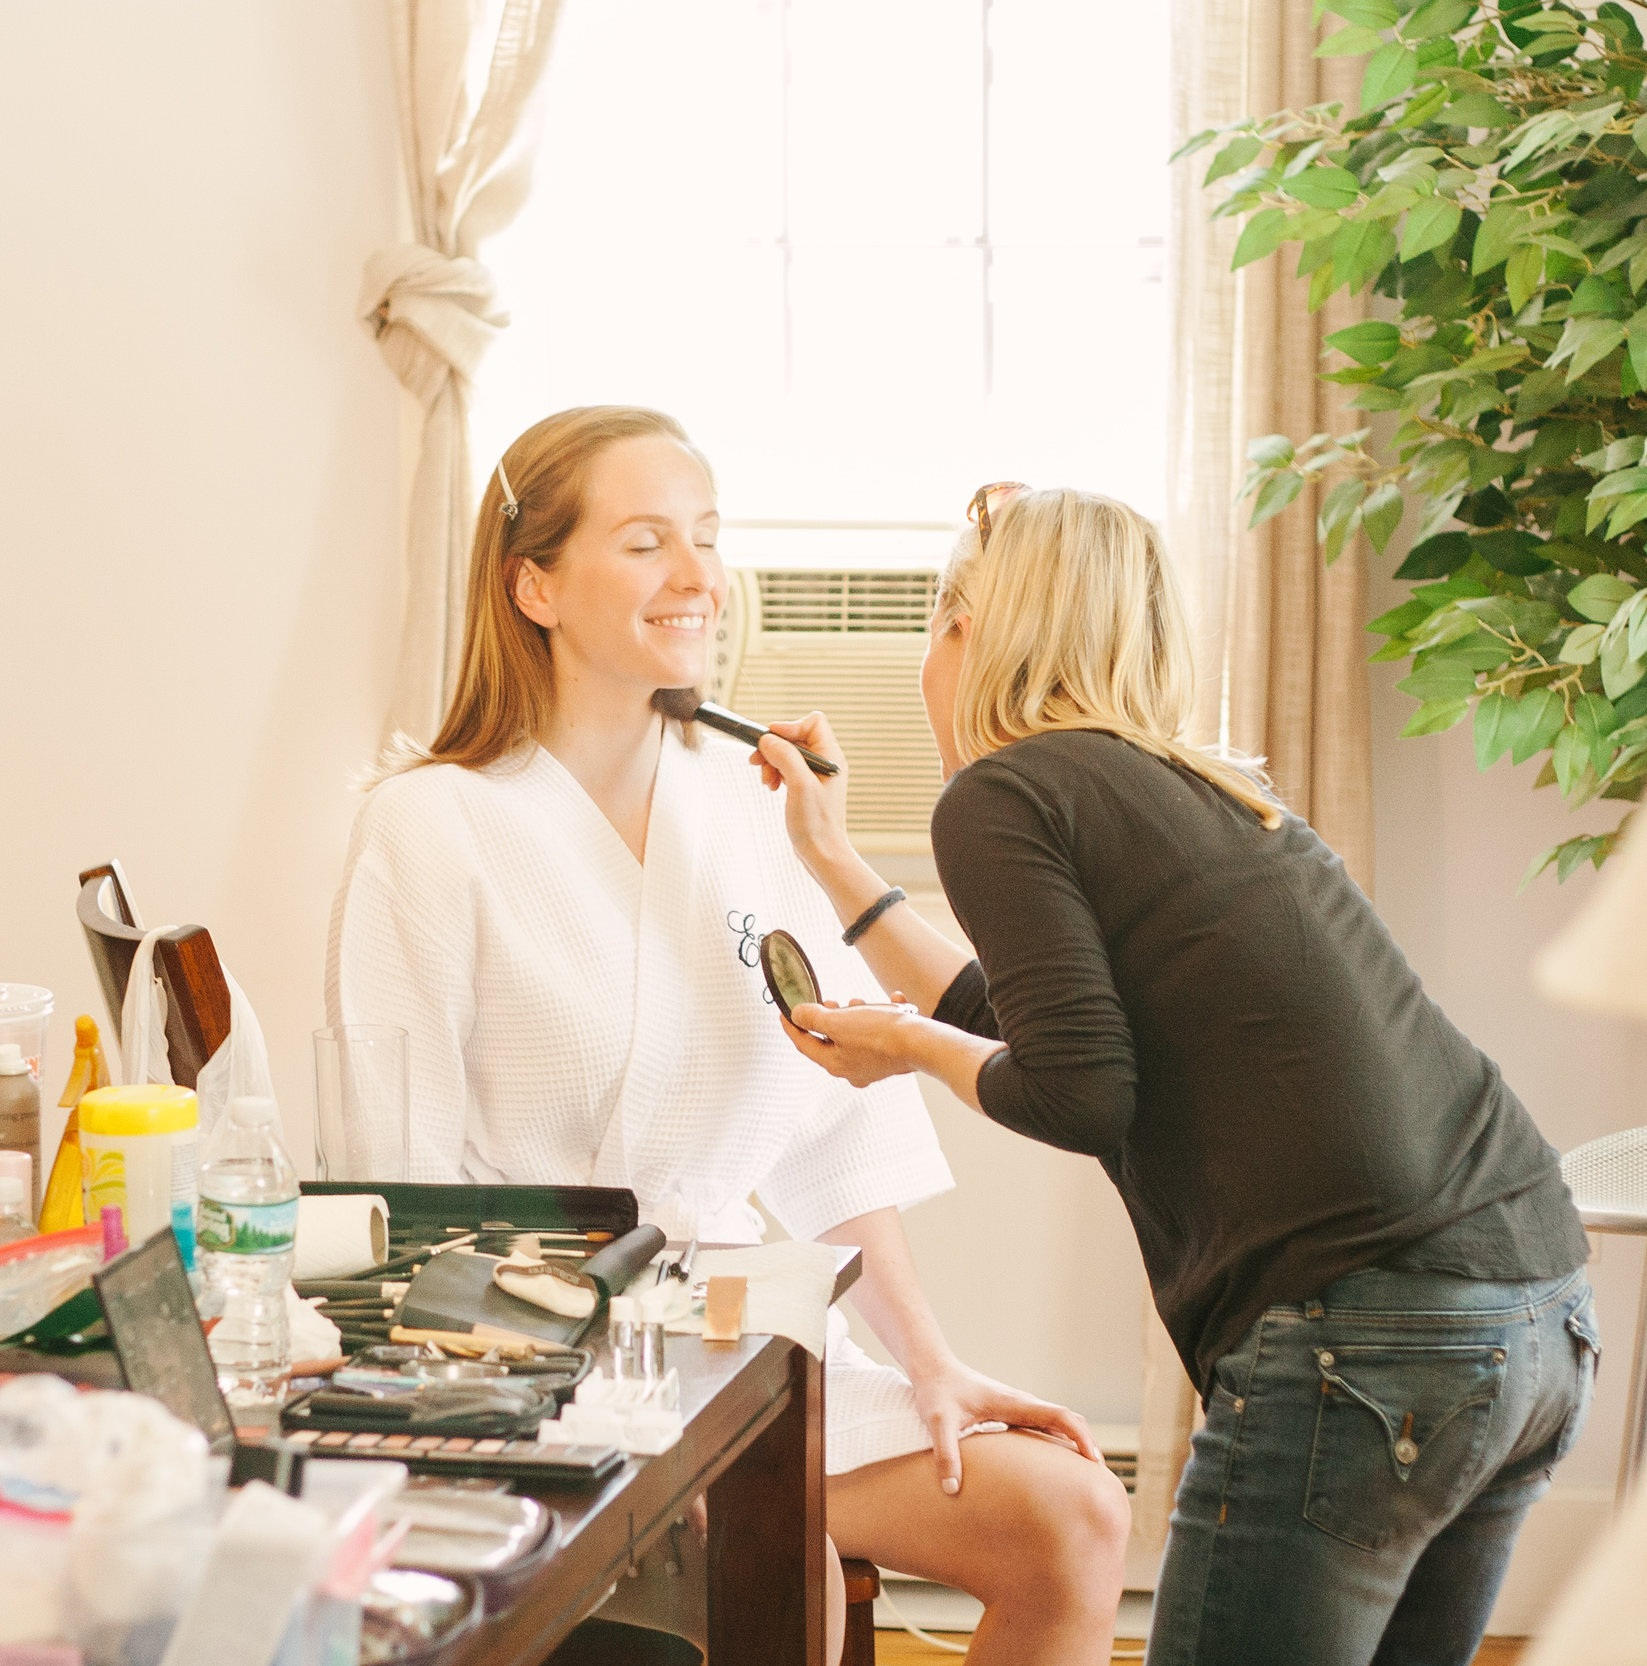 What to Do the Week Before Your Photo Session | How to prepare for a photo shoot with Alexis The Greek | How to achieve a healthy glow before you have your picture taken | Healthy, sustainable ways to look your best